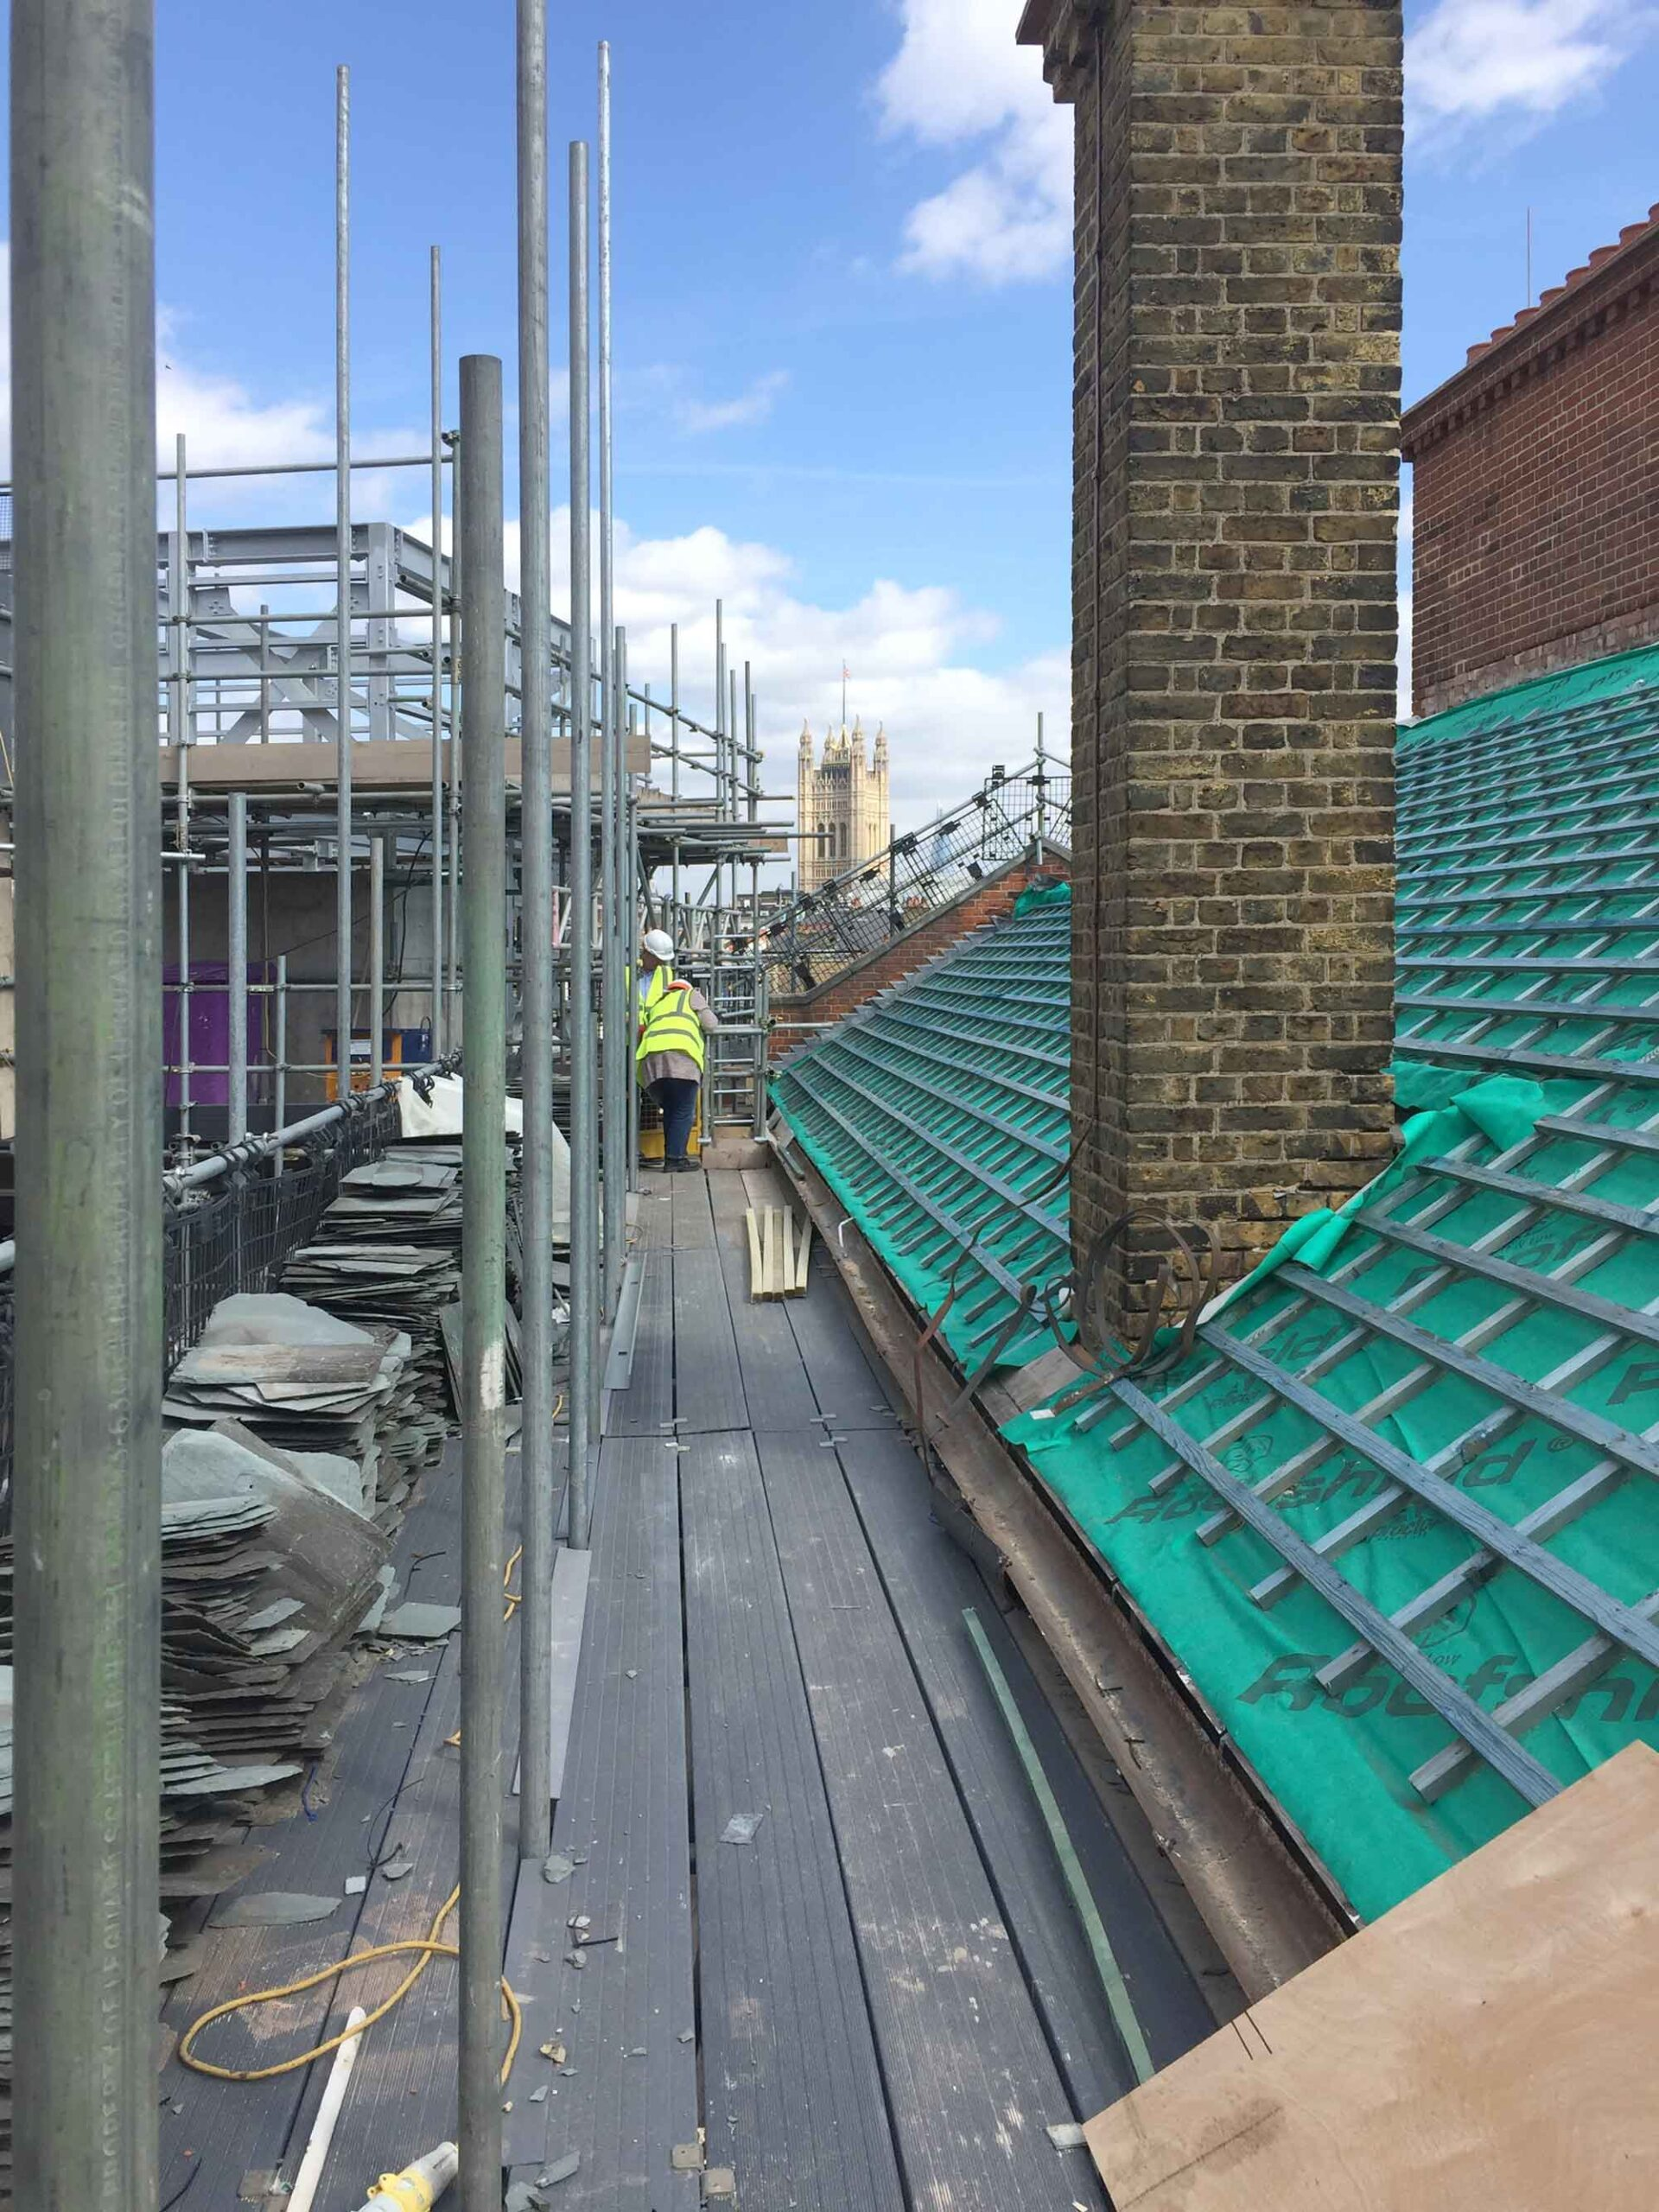 westminster-fire-station-openstudio-architects-existing-building-roof